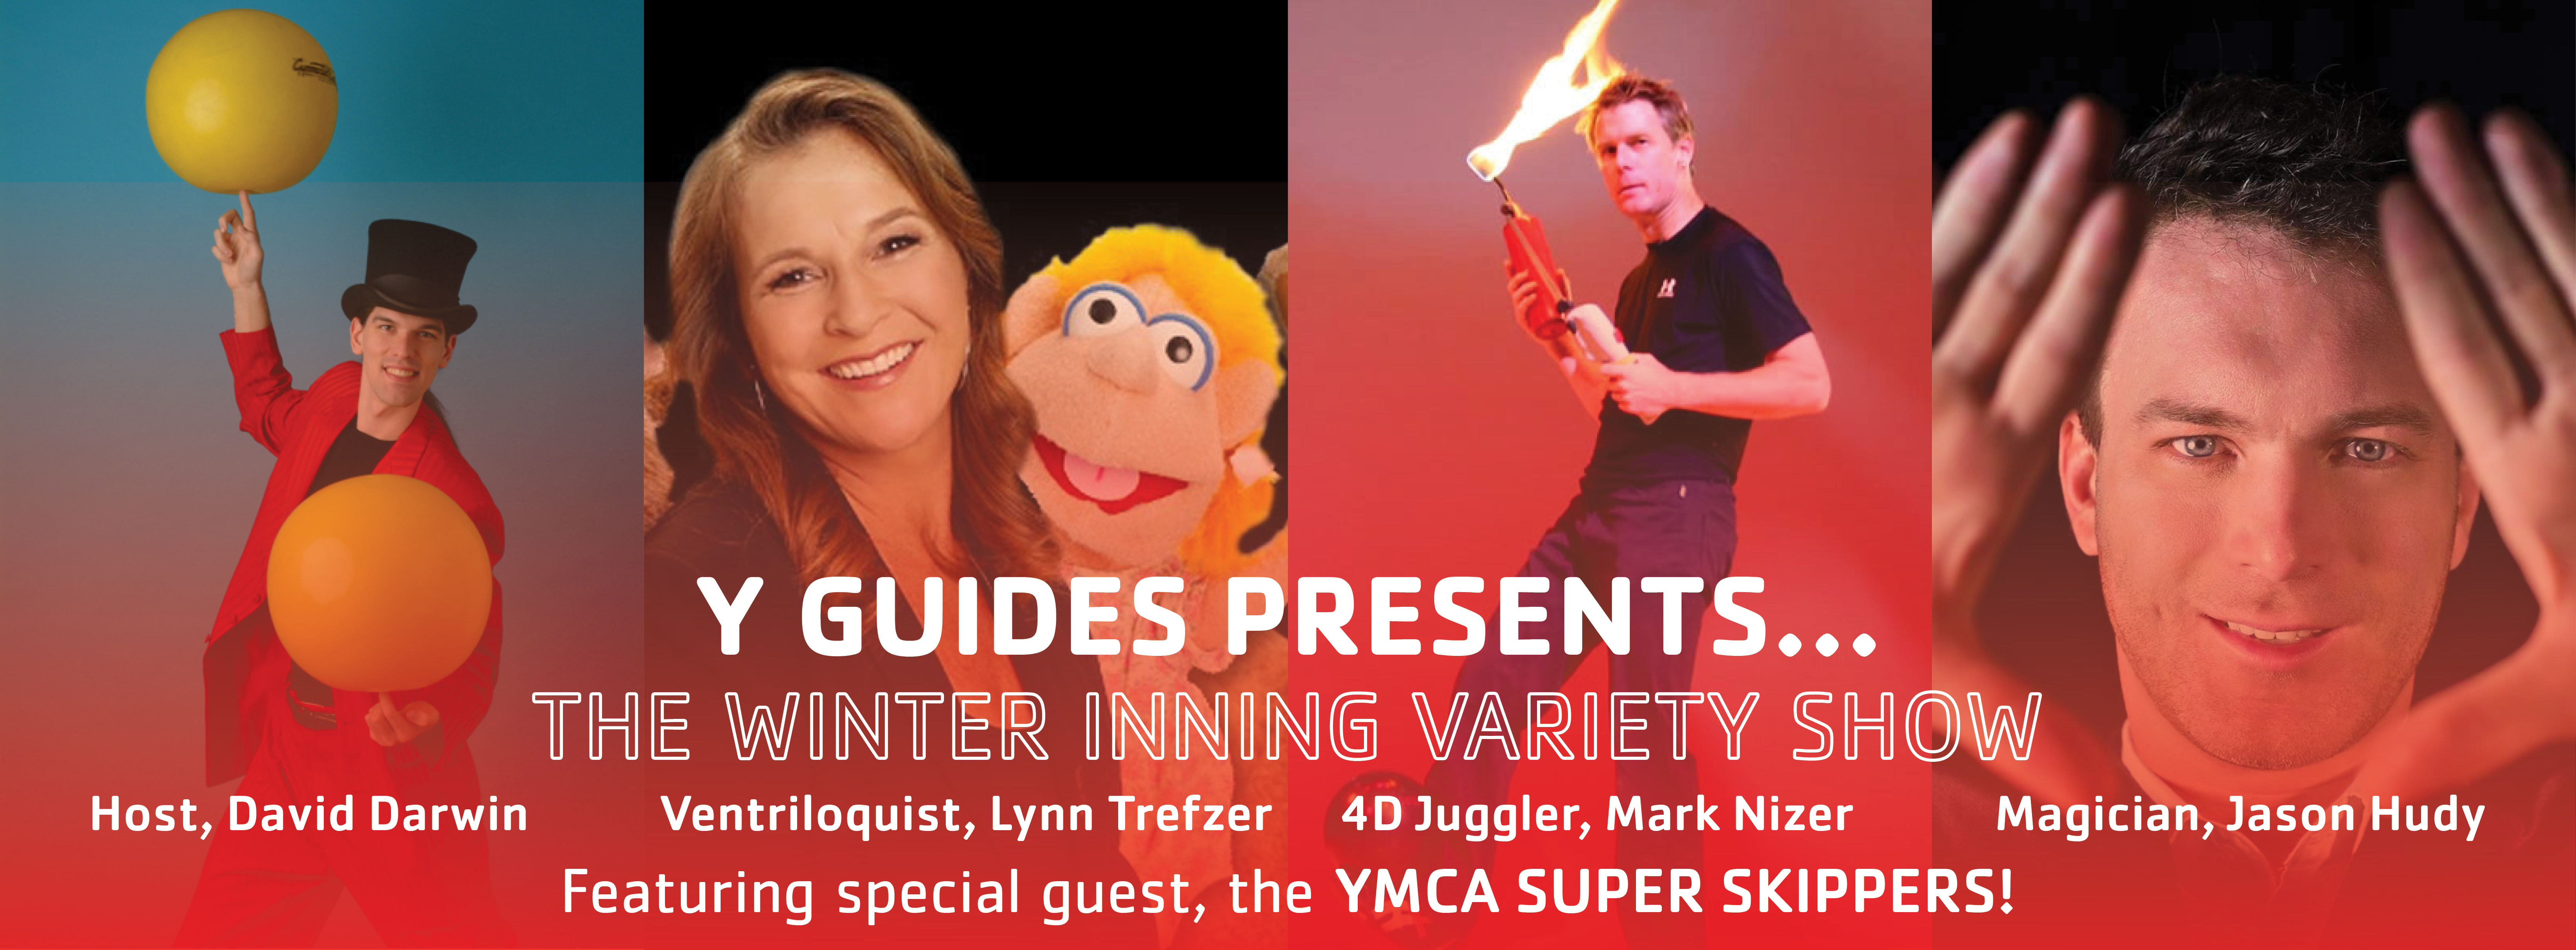 Y Guides Presents the Winter Inning Variety Show